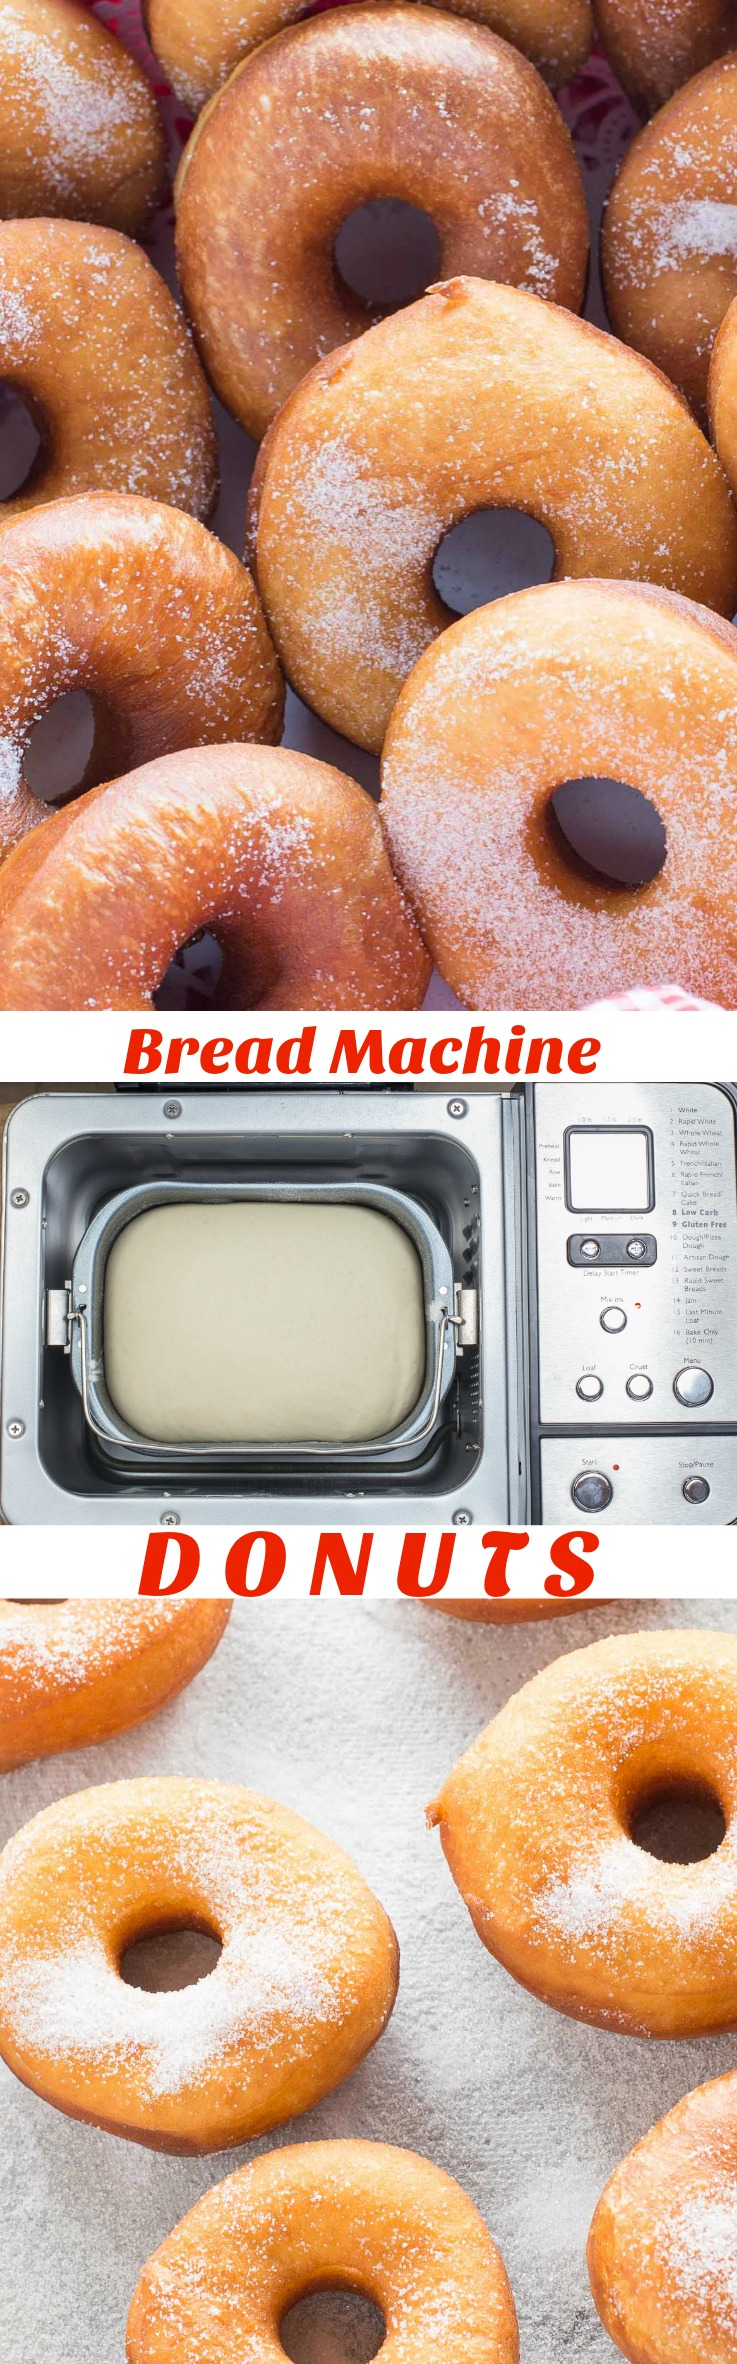 Easy Bread Machine Donuts are light and fluffy just like the ones from your favourite bakery. Sprinkle with plain white sugar, icing sugar, dip in chocolate or decorate with frosting and sprinkles. It is time to pull out that bread machine and whip up a batch of yummy homemade donuts! via @artandthekitch